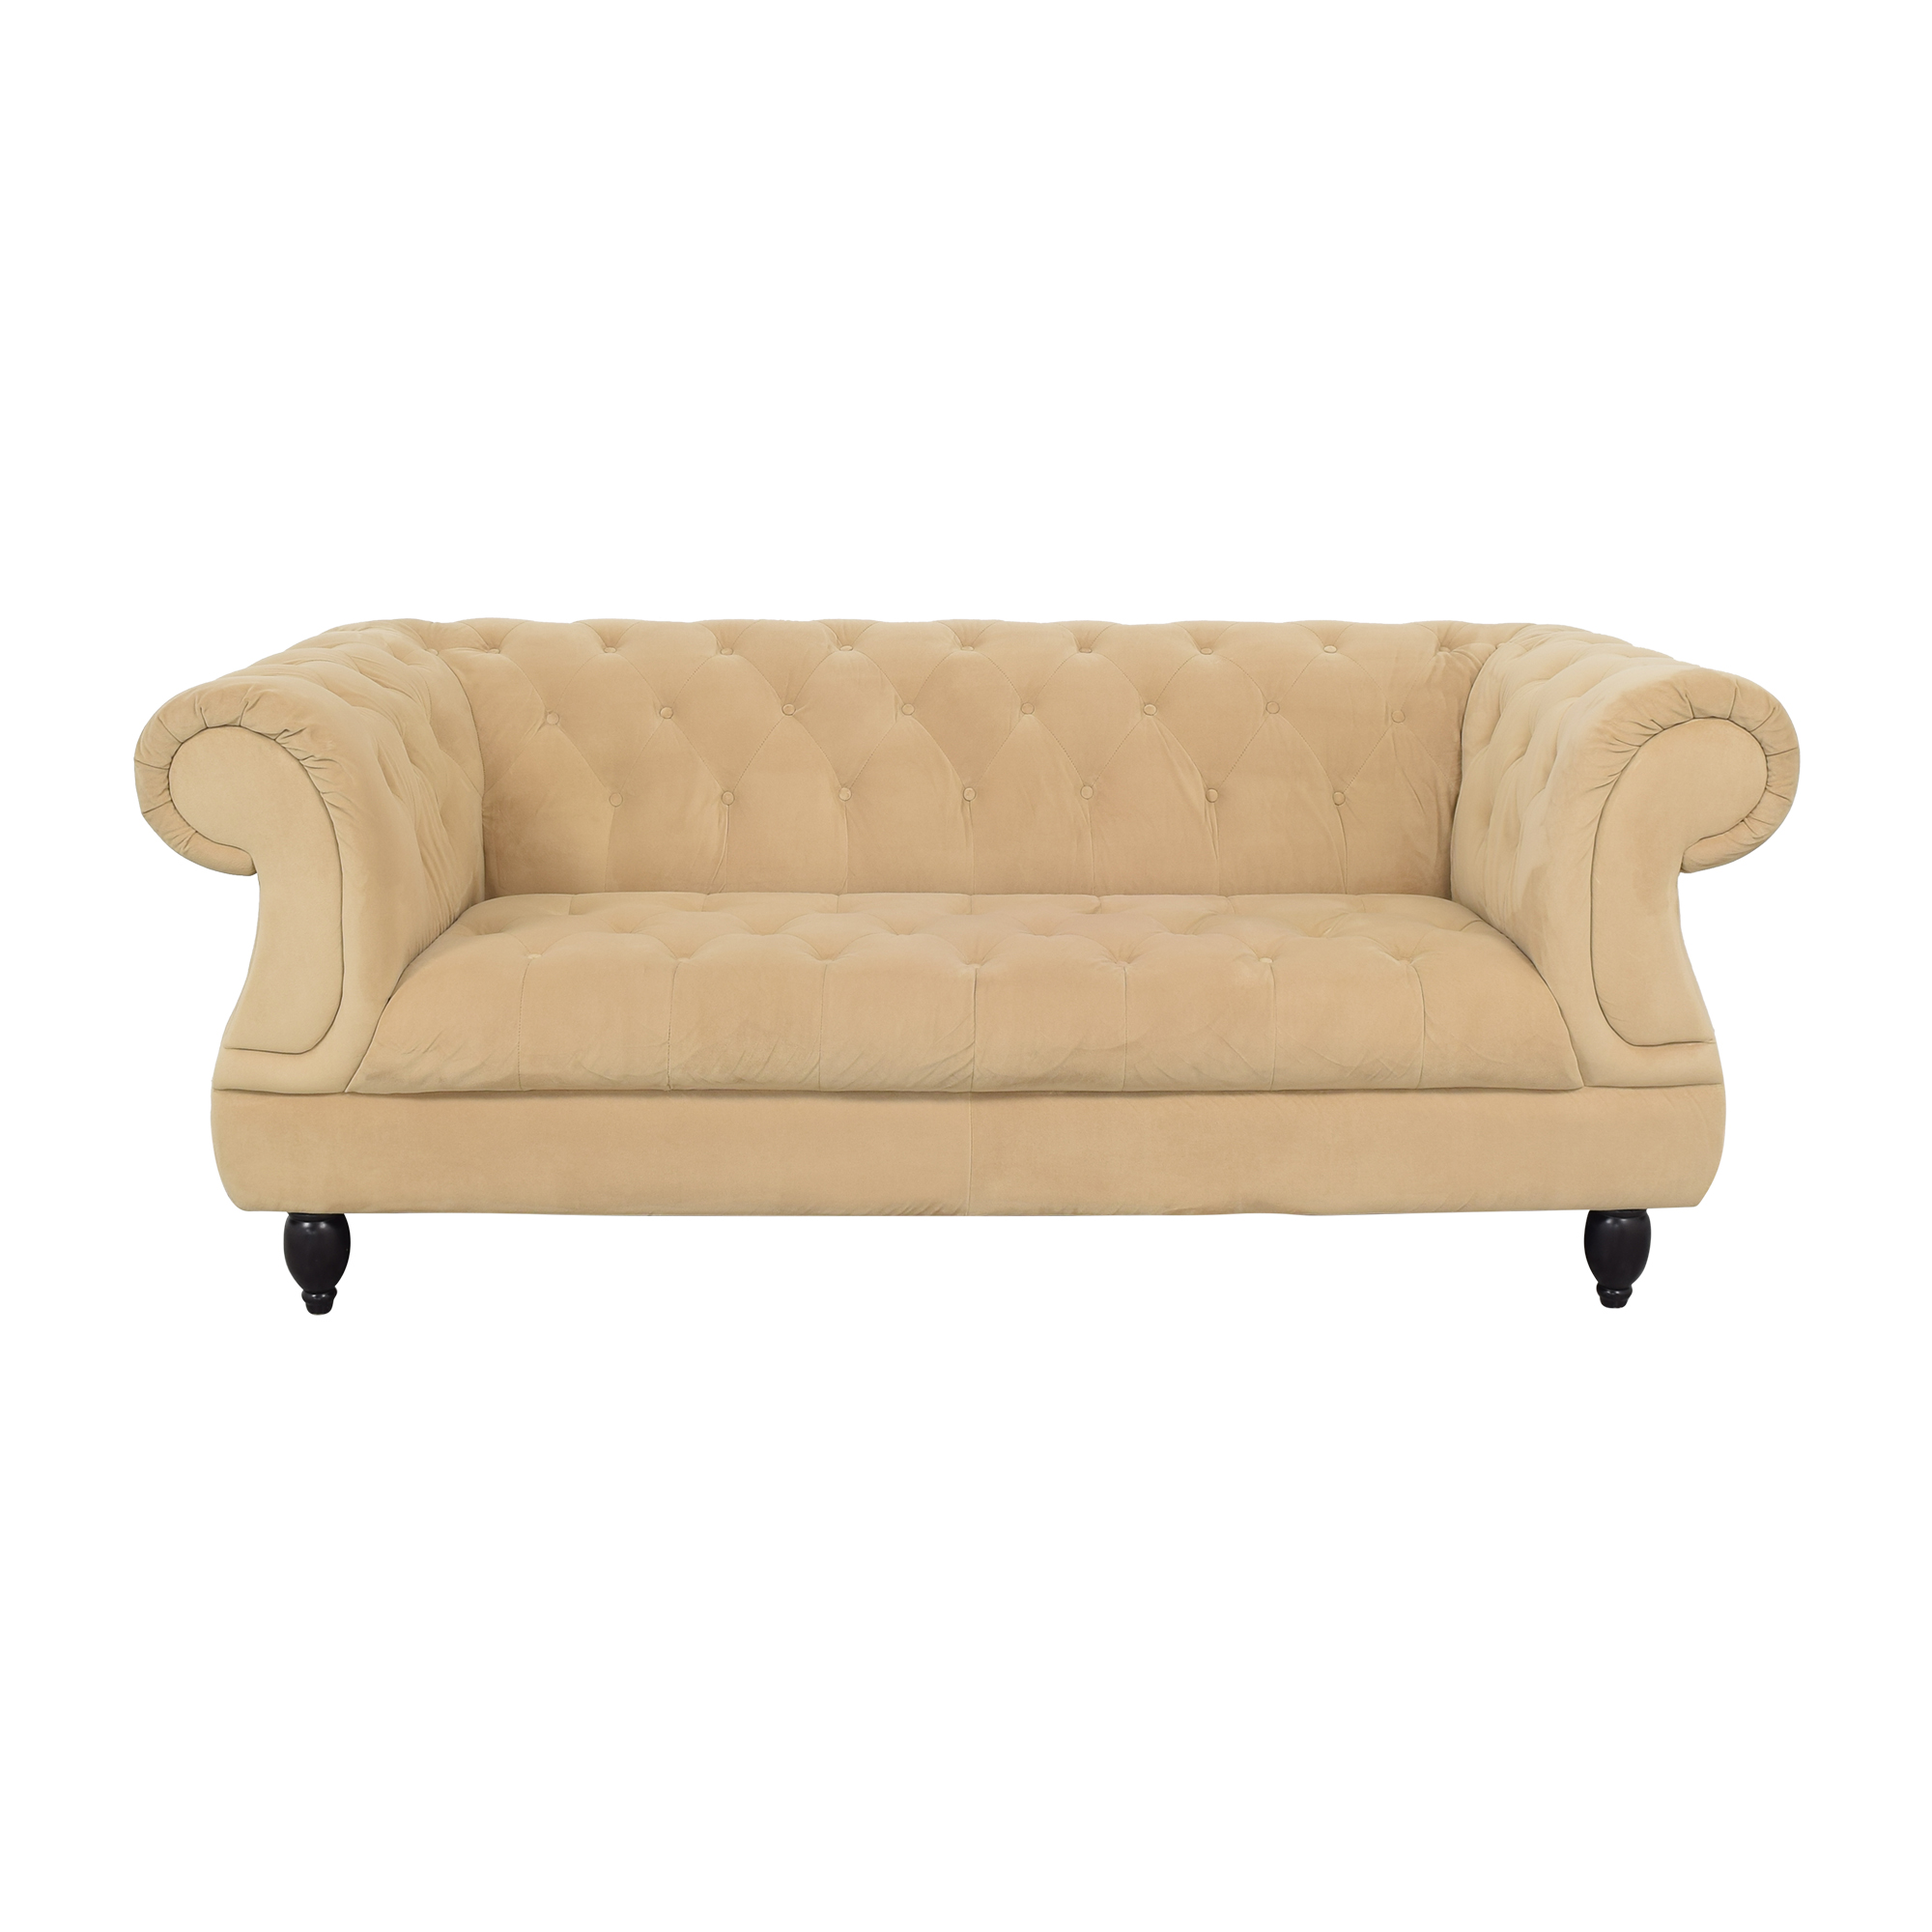 Raymour & Flanigan Raymour & Flanigan Rolled Arm Tufted Nailhead Sofa price